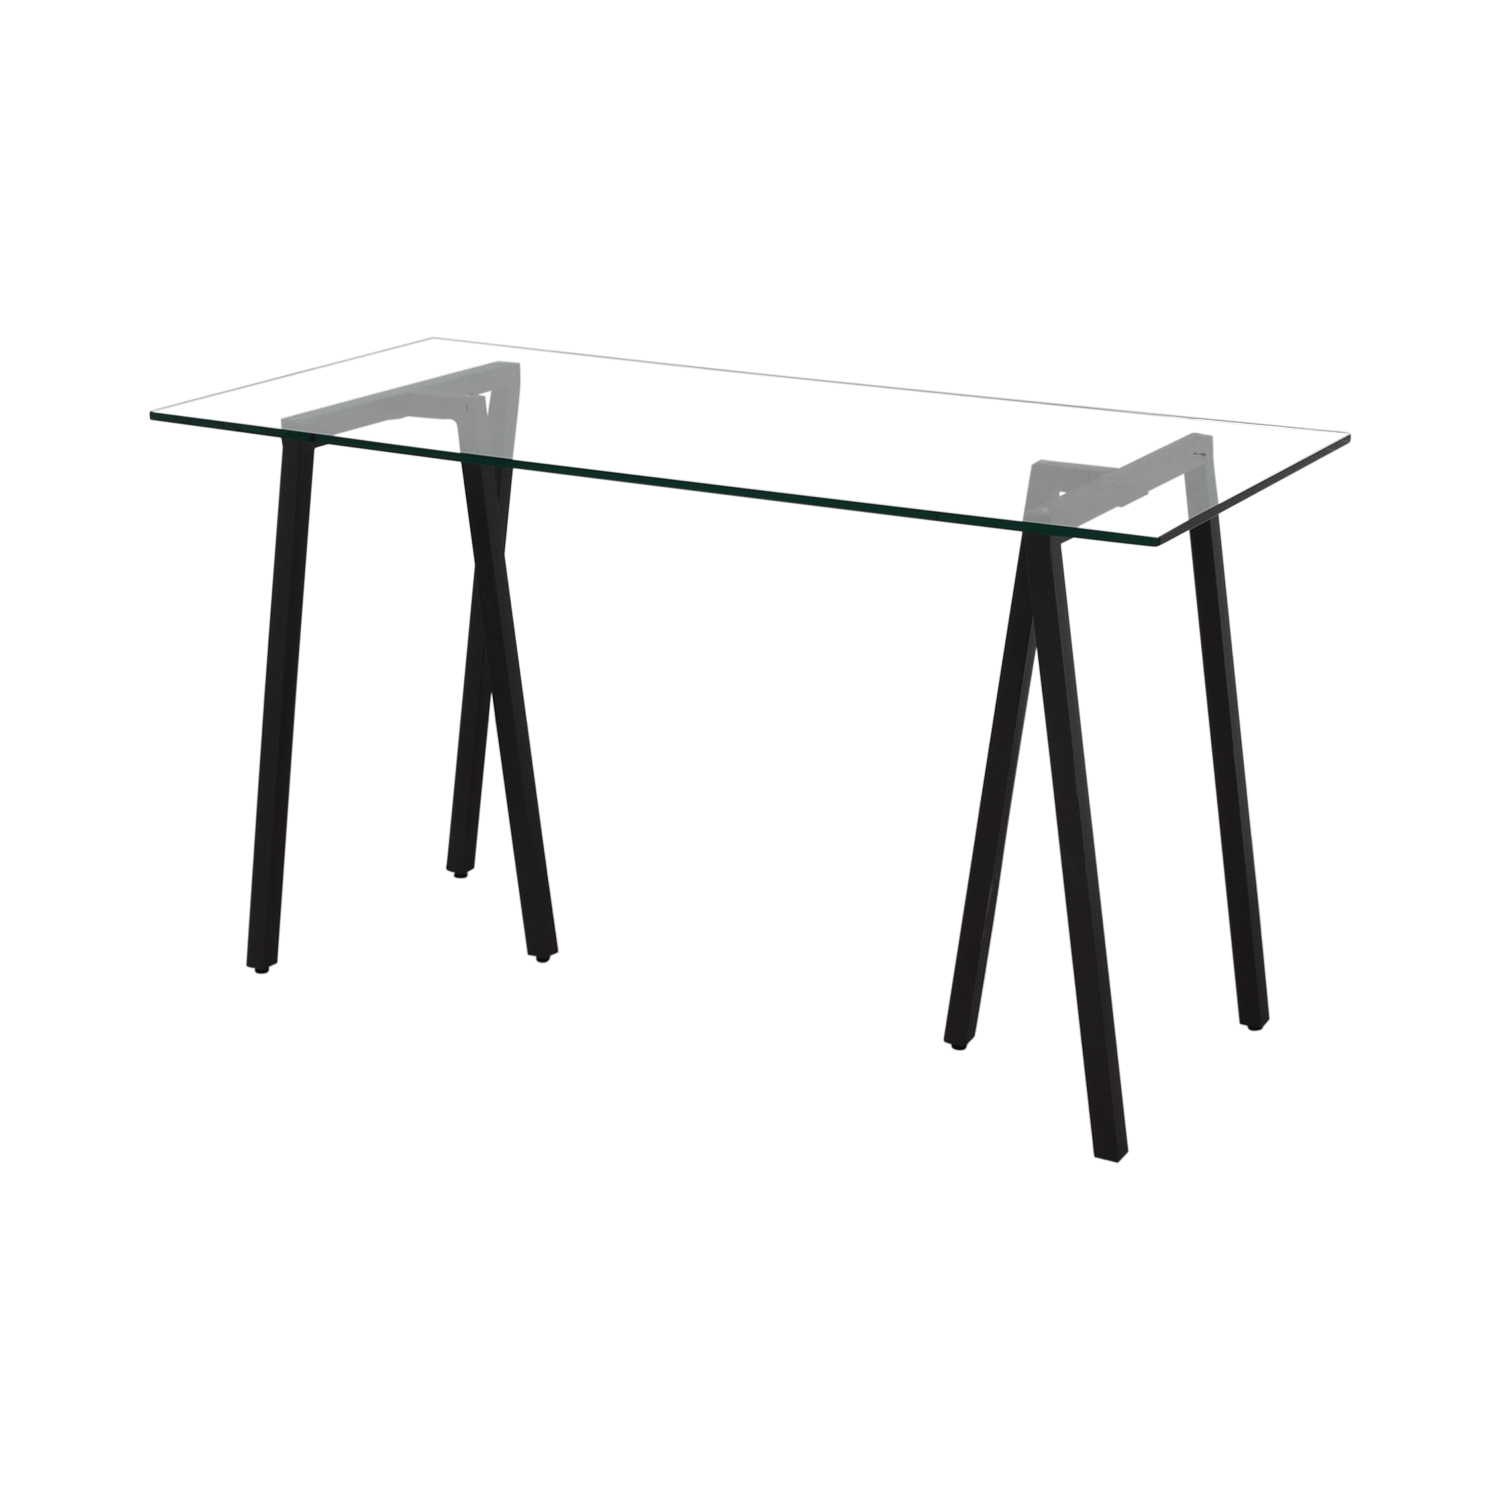 West Elm Glass Desk / Dinner Tables